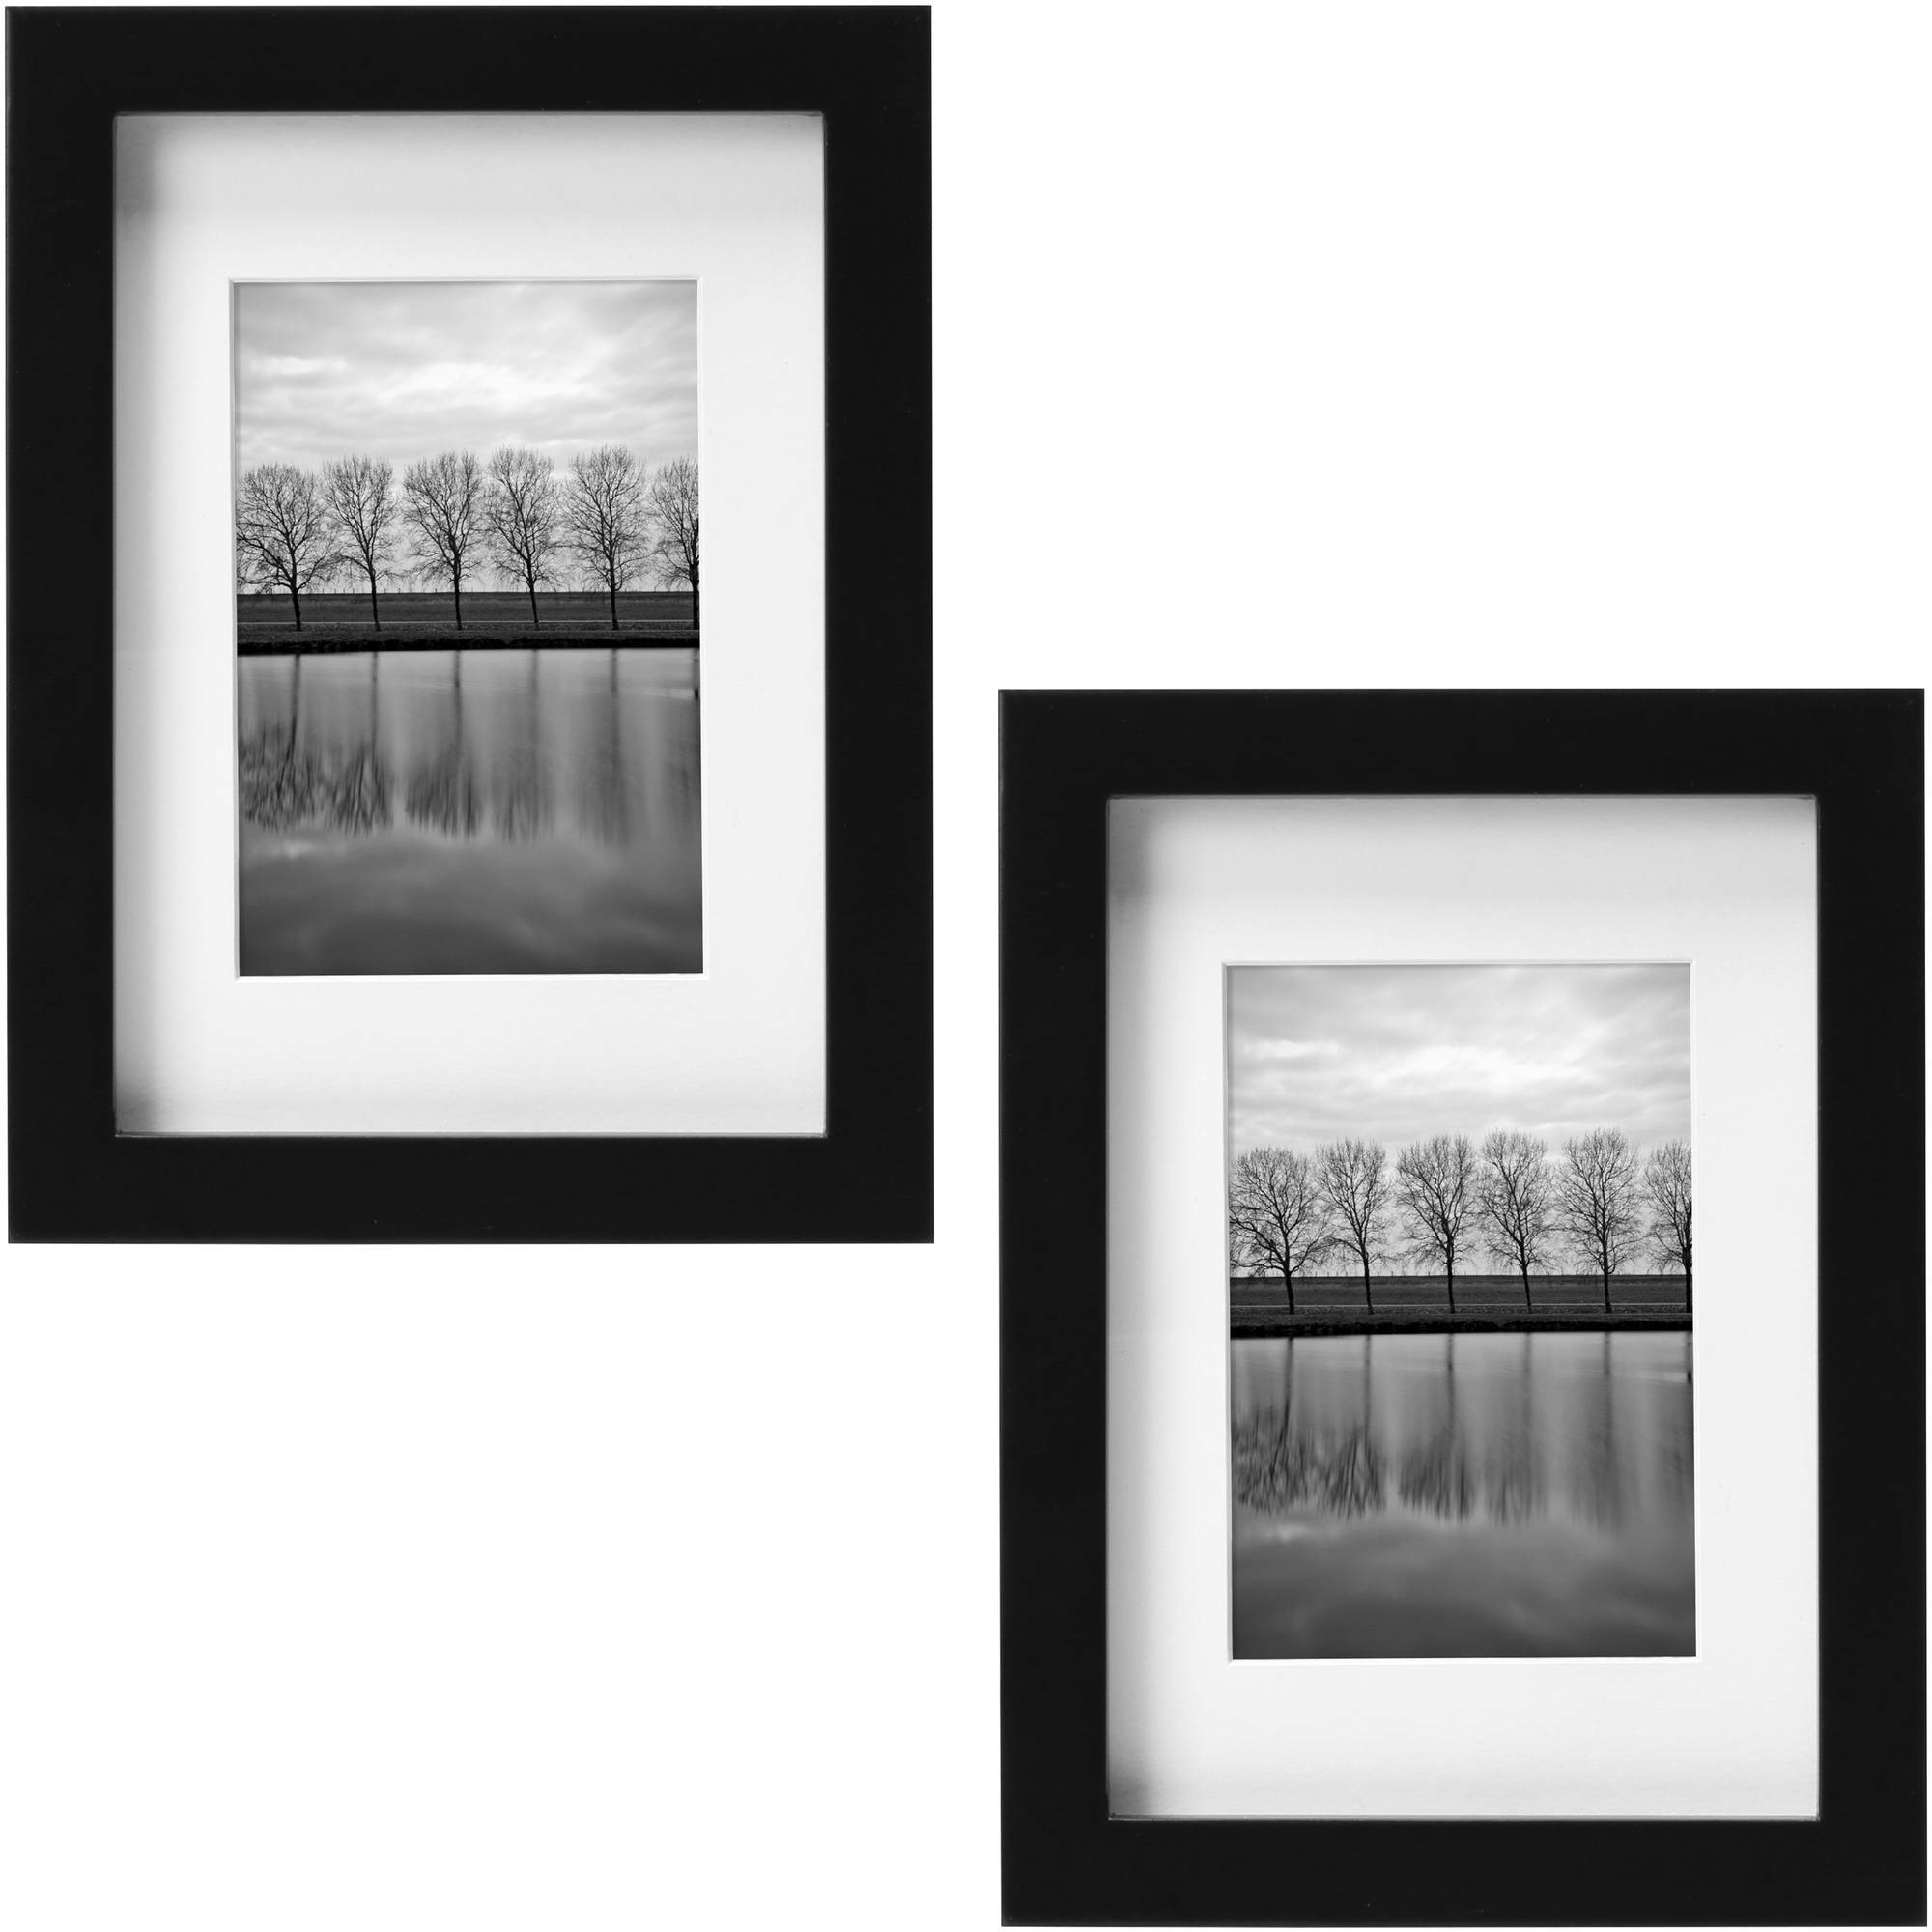 "Better Homes and Gardens Gallery 5"" x 7"" (12.7 cm x 17.78 cm) Matted to 3.5"" x 5"" (8.89 cm x 12.7 cm) Picture Frame, Black, Set of 2"